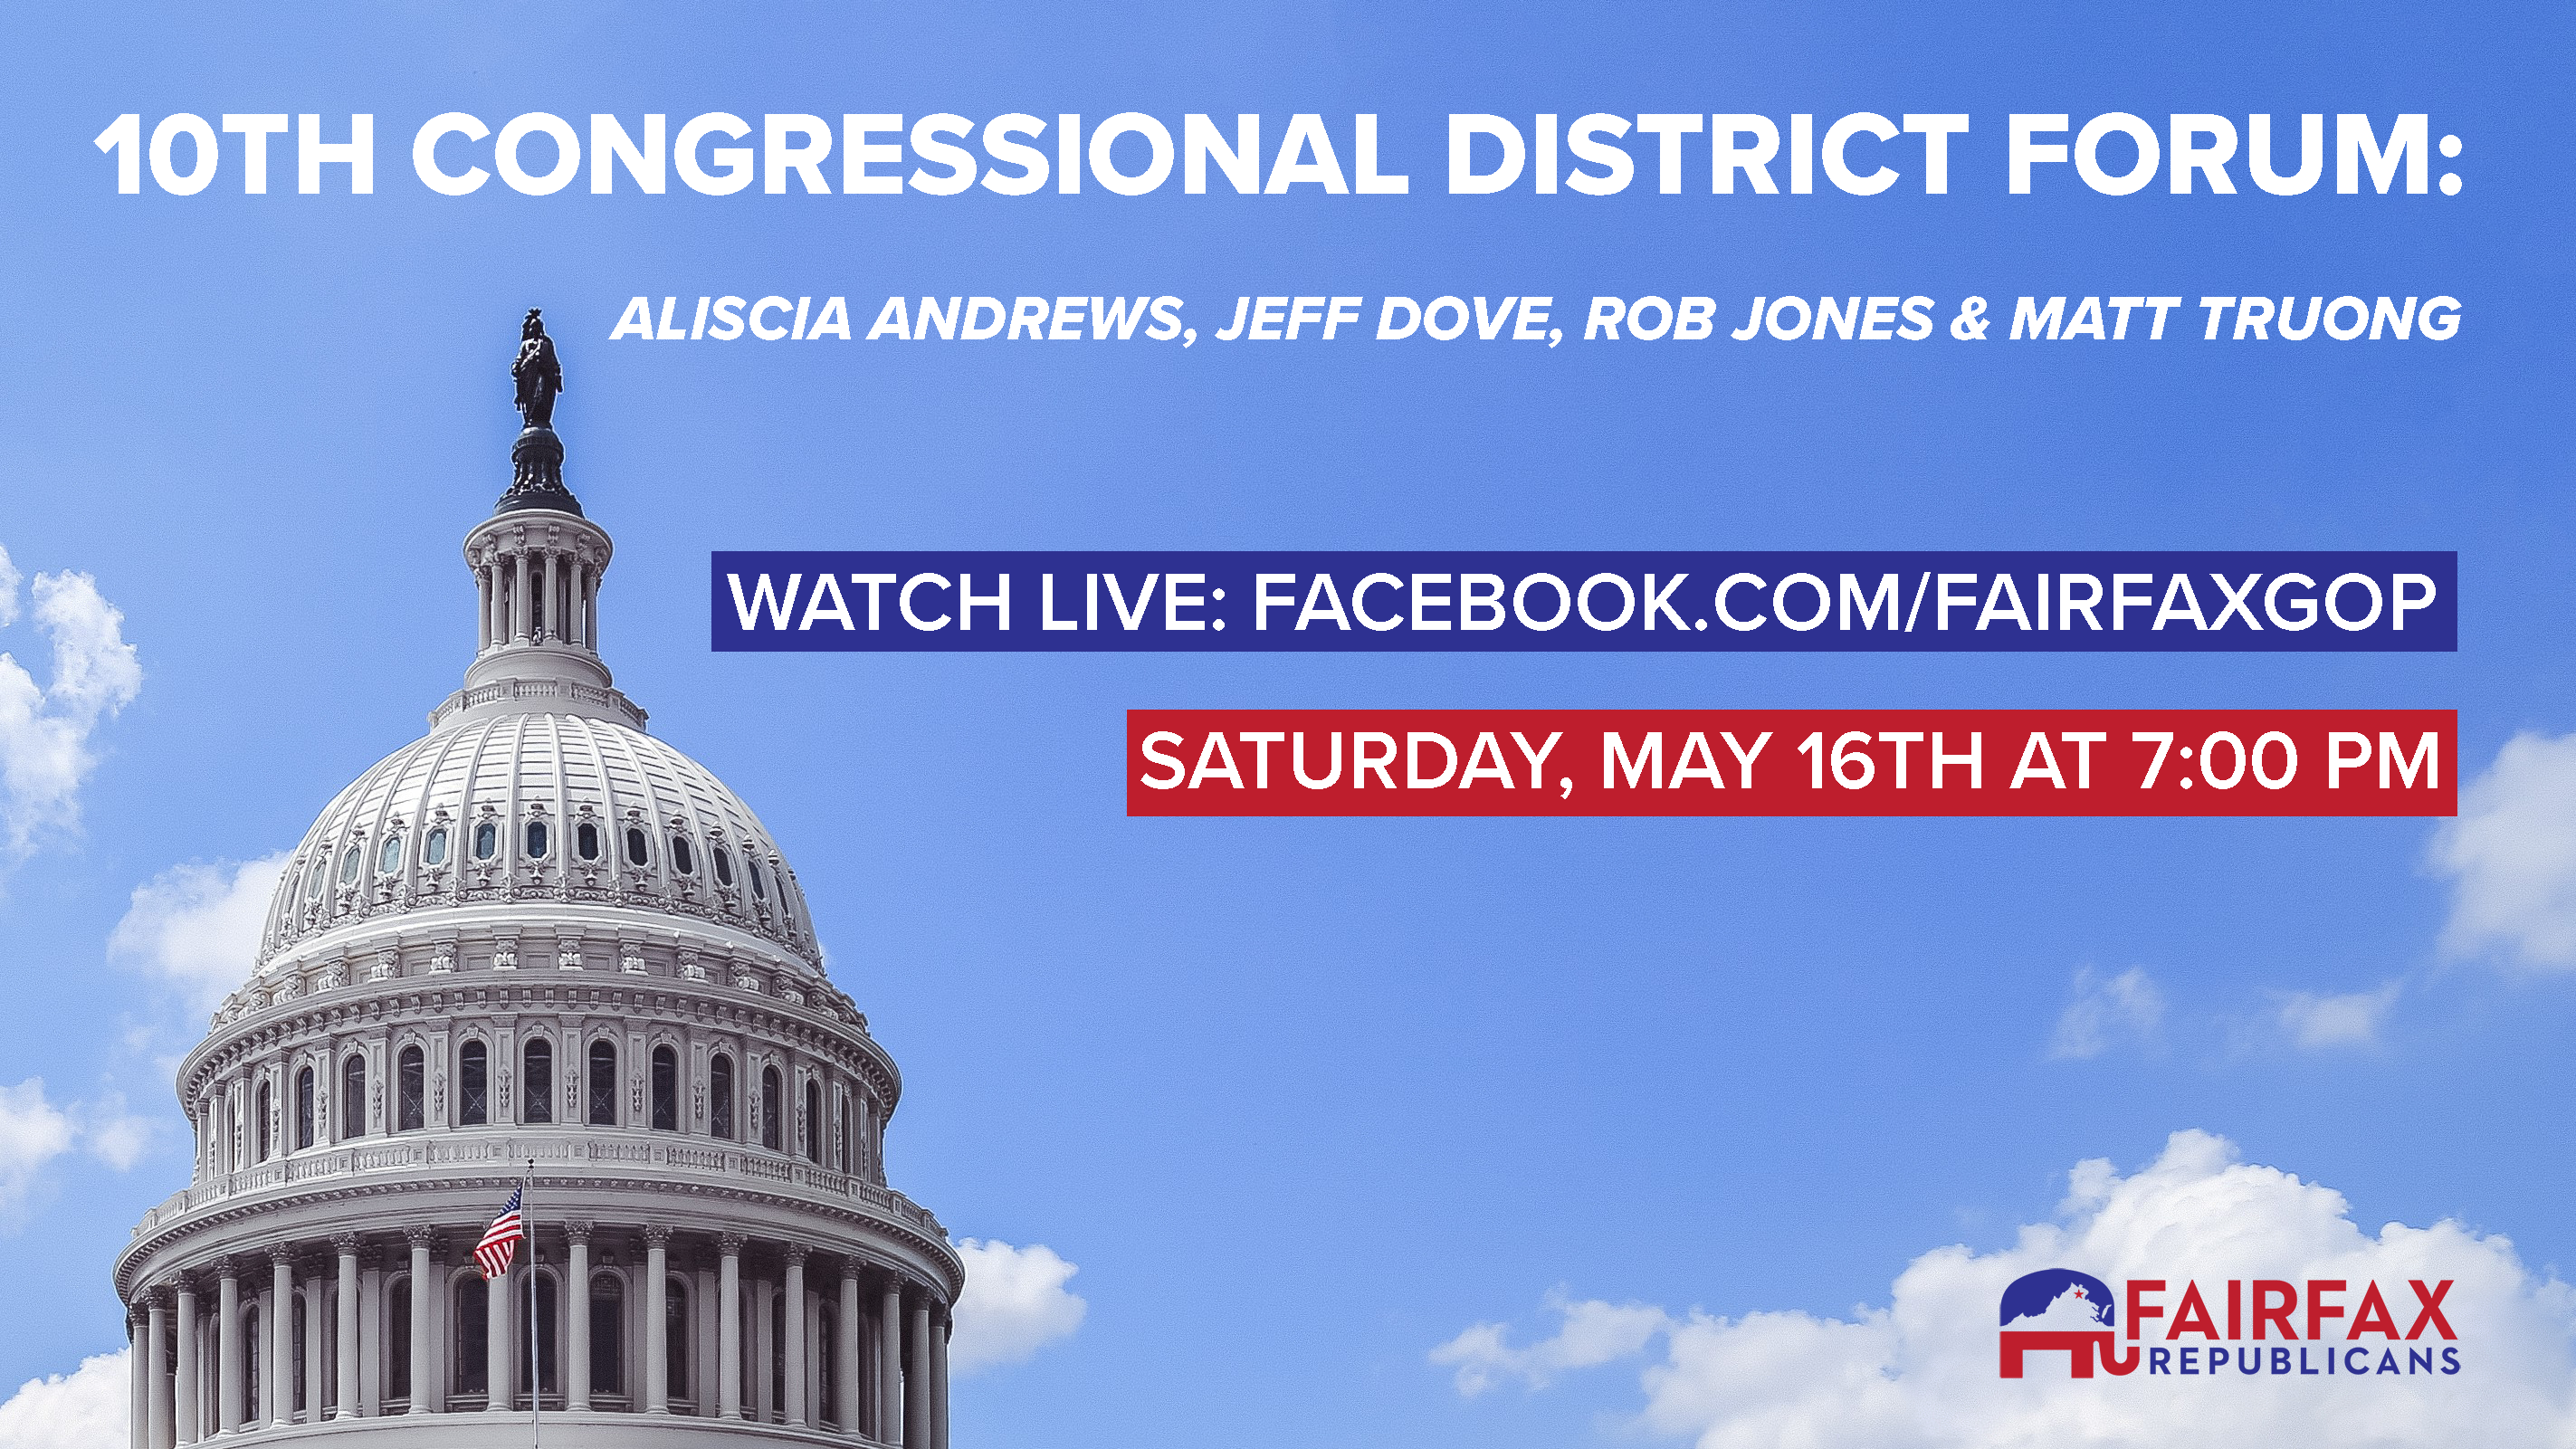 10th Congressional District Forum